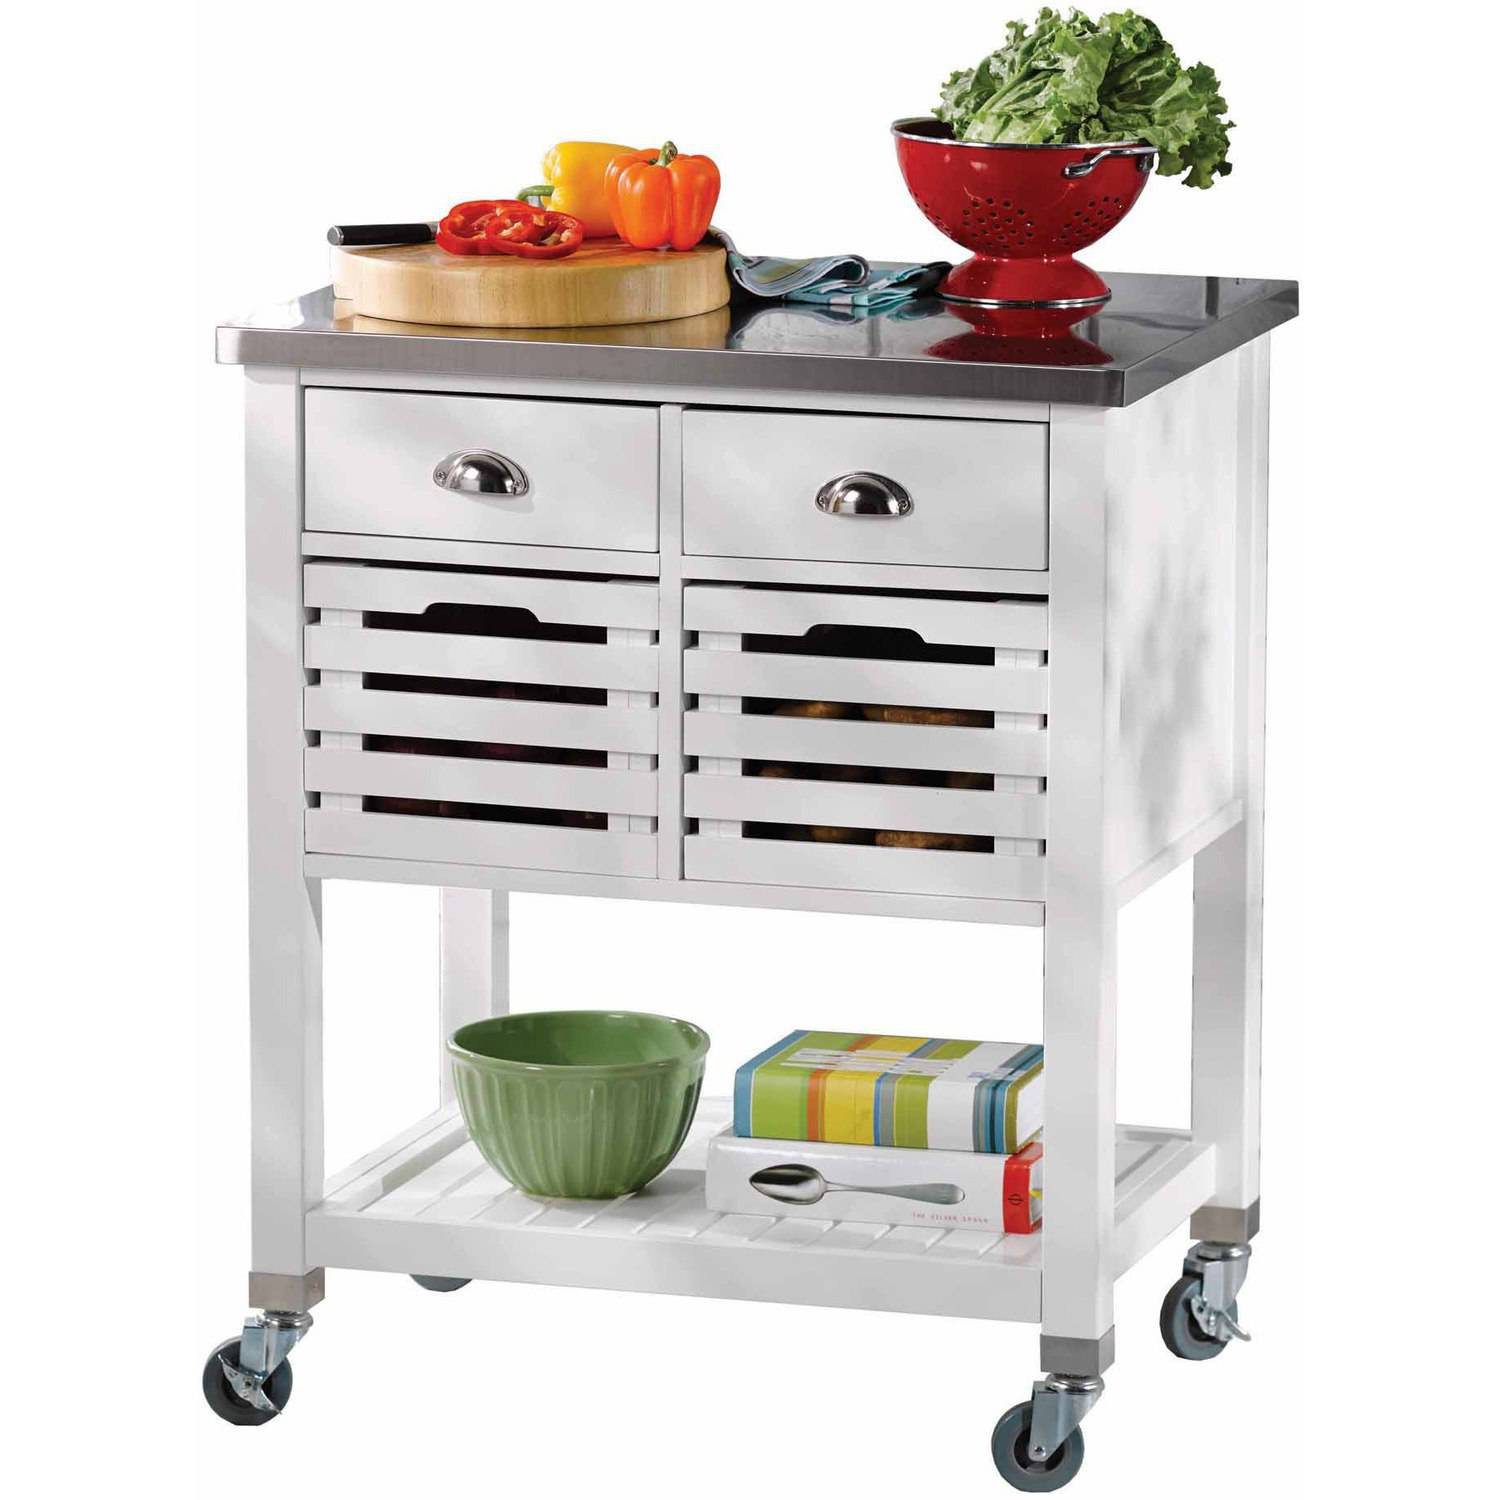 Linon Robbin Wood Kitchen Cart With Stainless Steel Top, 36 Inches Tall